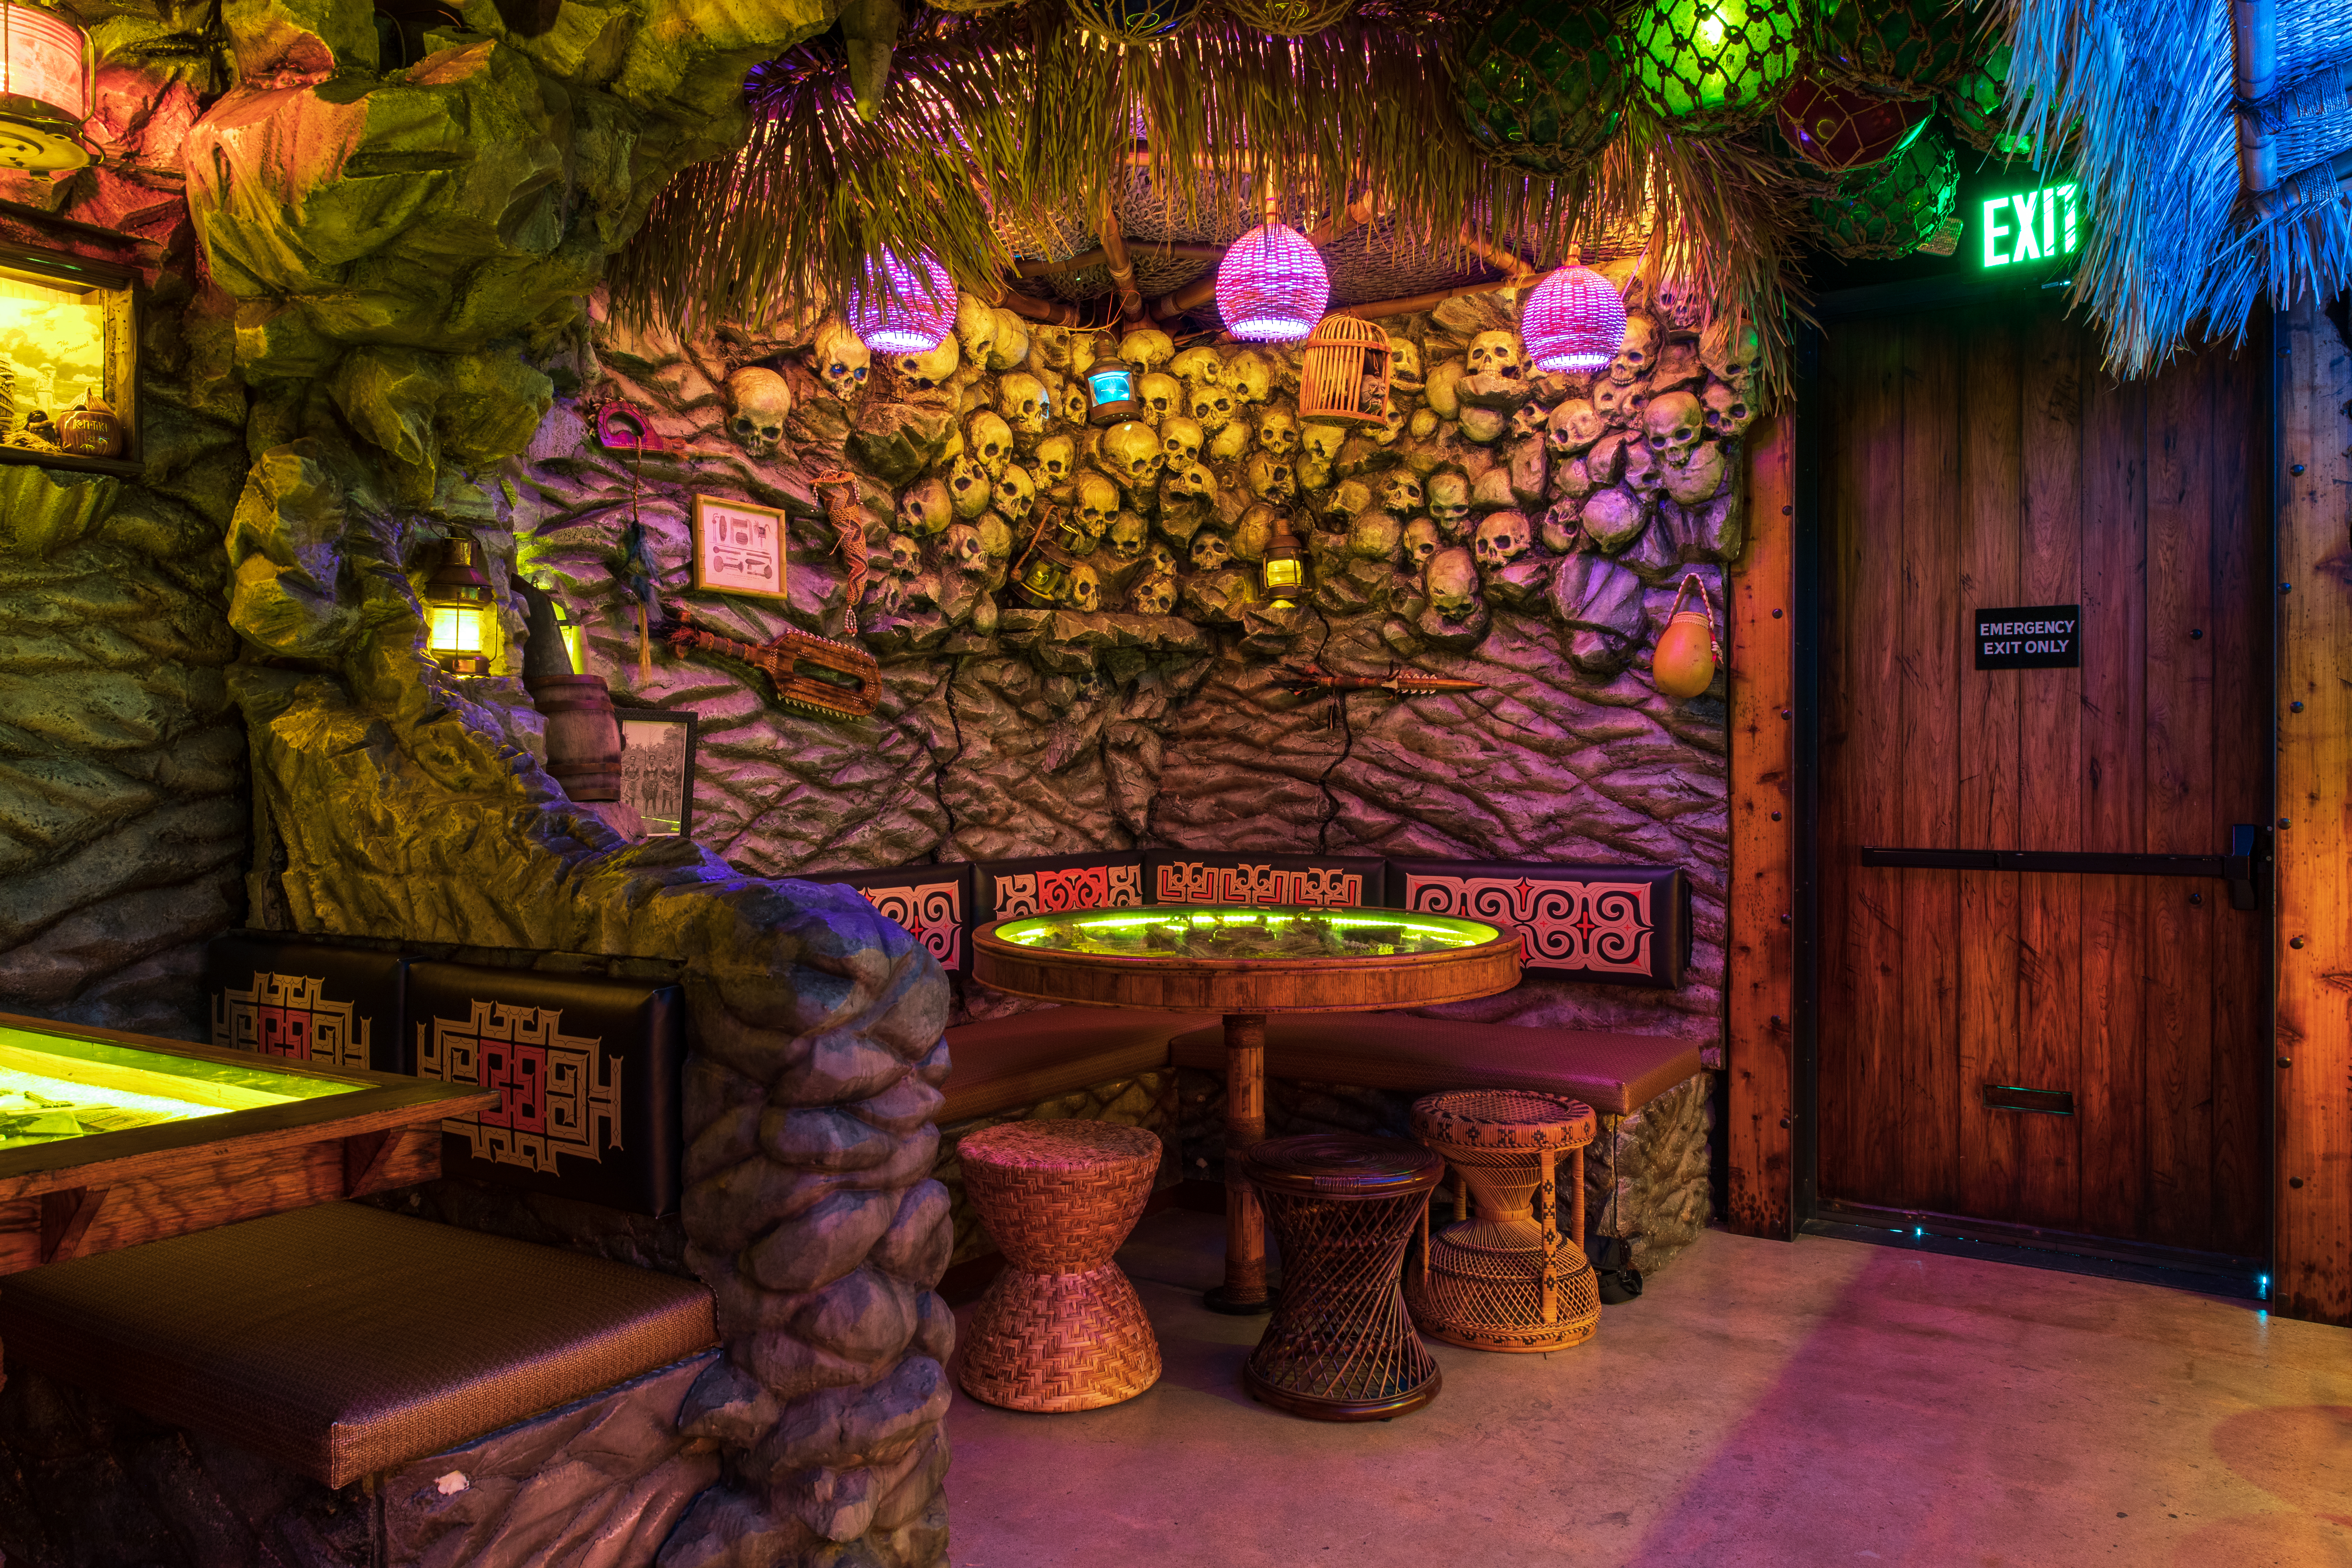 Under colorful lamps, fronds, and netting, a corner booth is nestled into a rock wall inlaid with skulls.